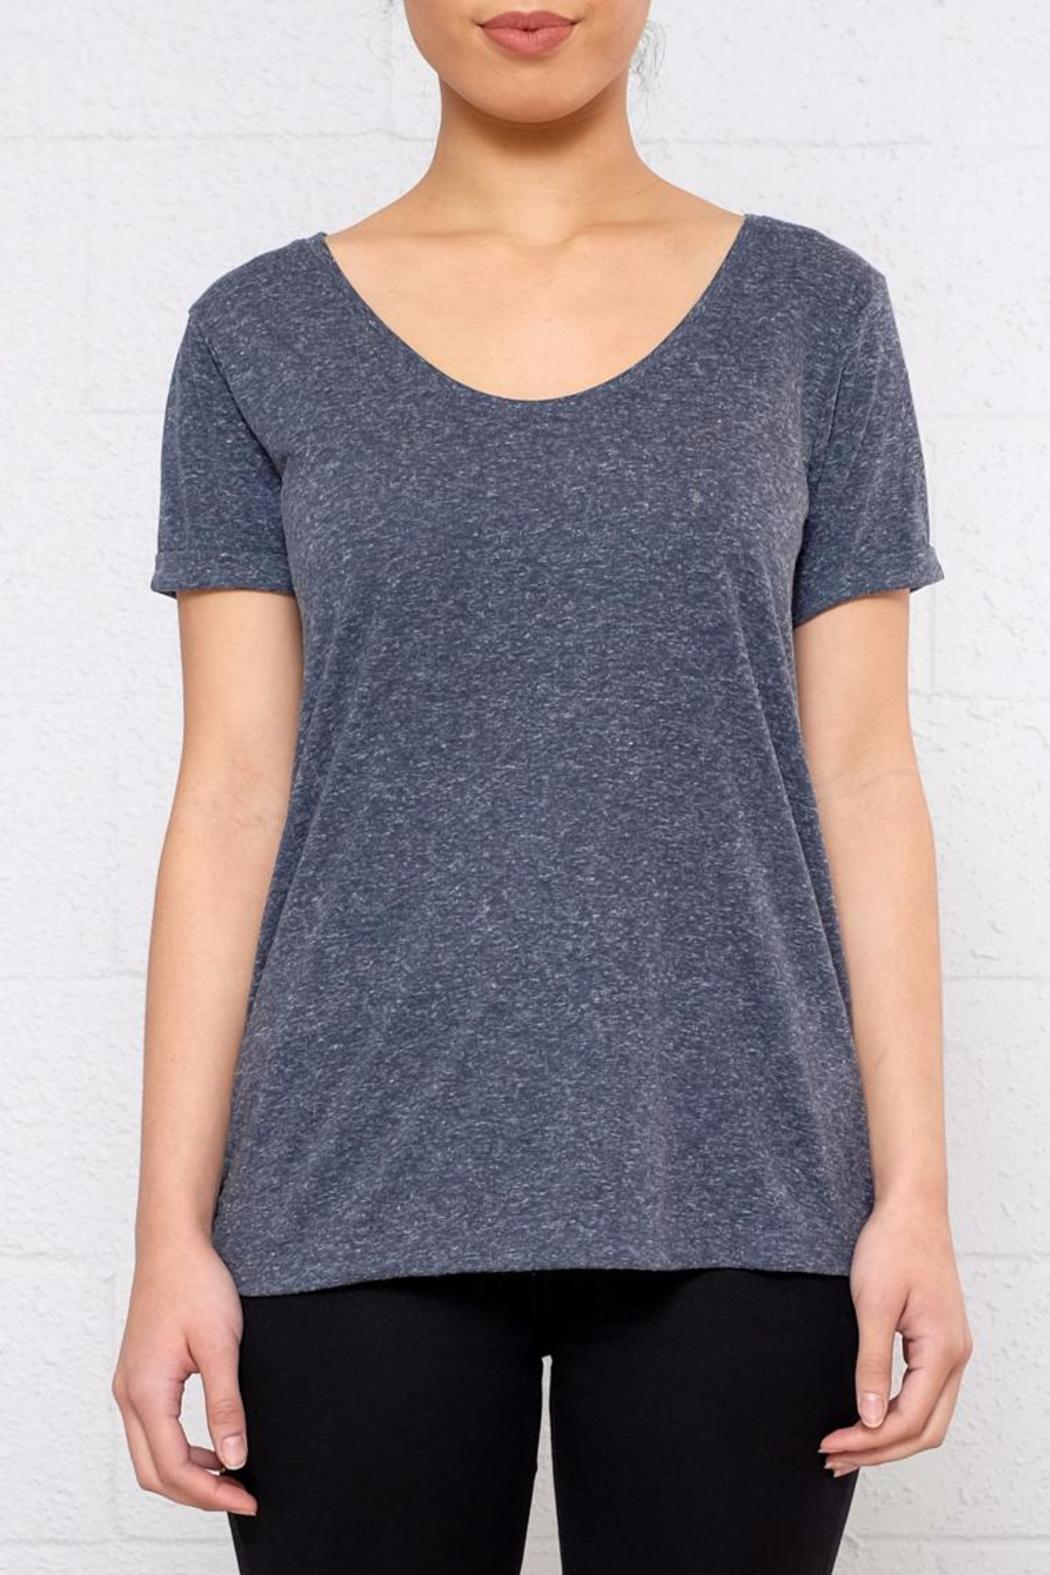 jacqueline de yong v neck tee from vancouver by 8th main shoptiques. Black Bedroom Furniture Sets. Home Design Ideas